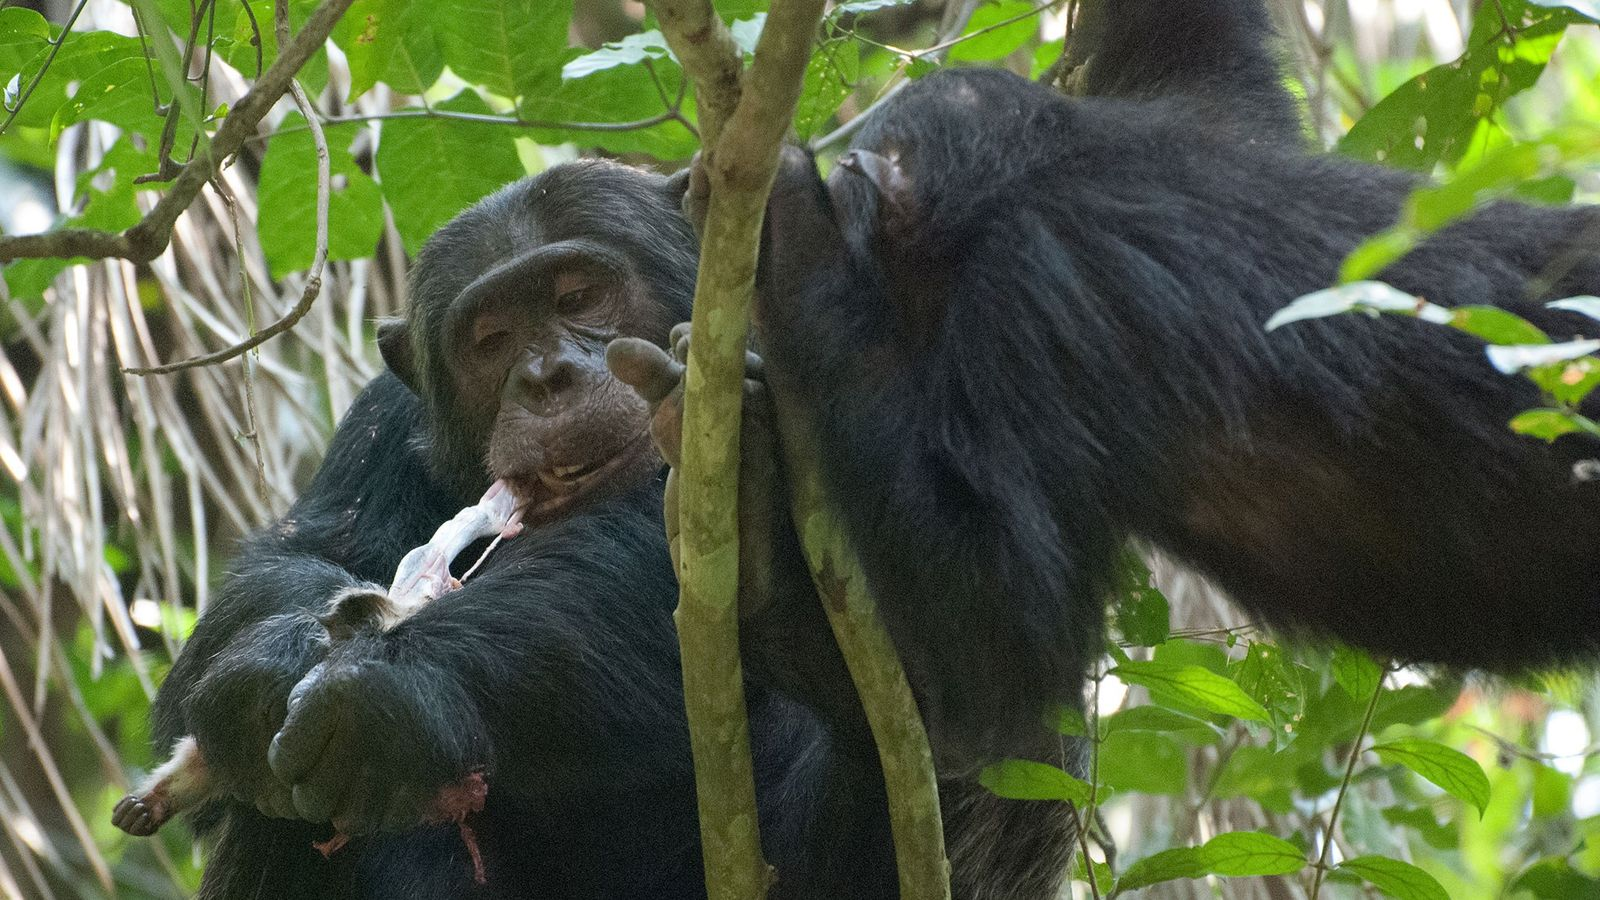 A male chimpanzee feeds on a red colobus monkey in Gombe National Park, Tanzania.